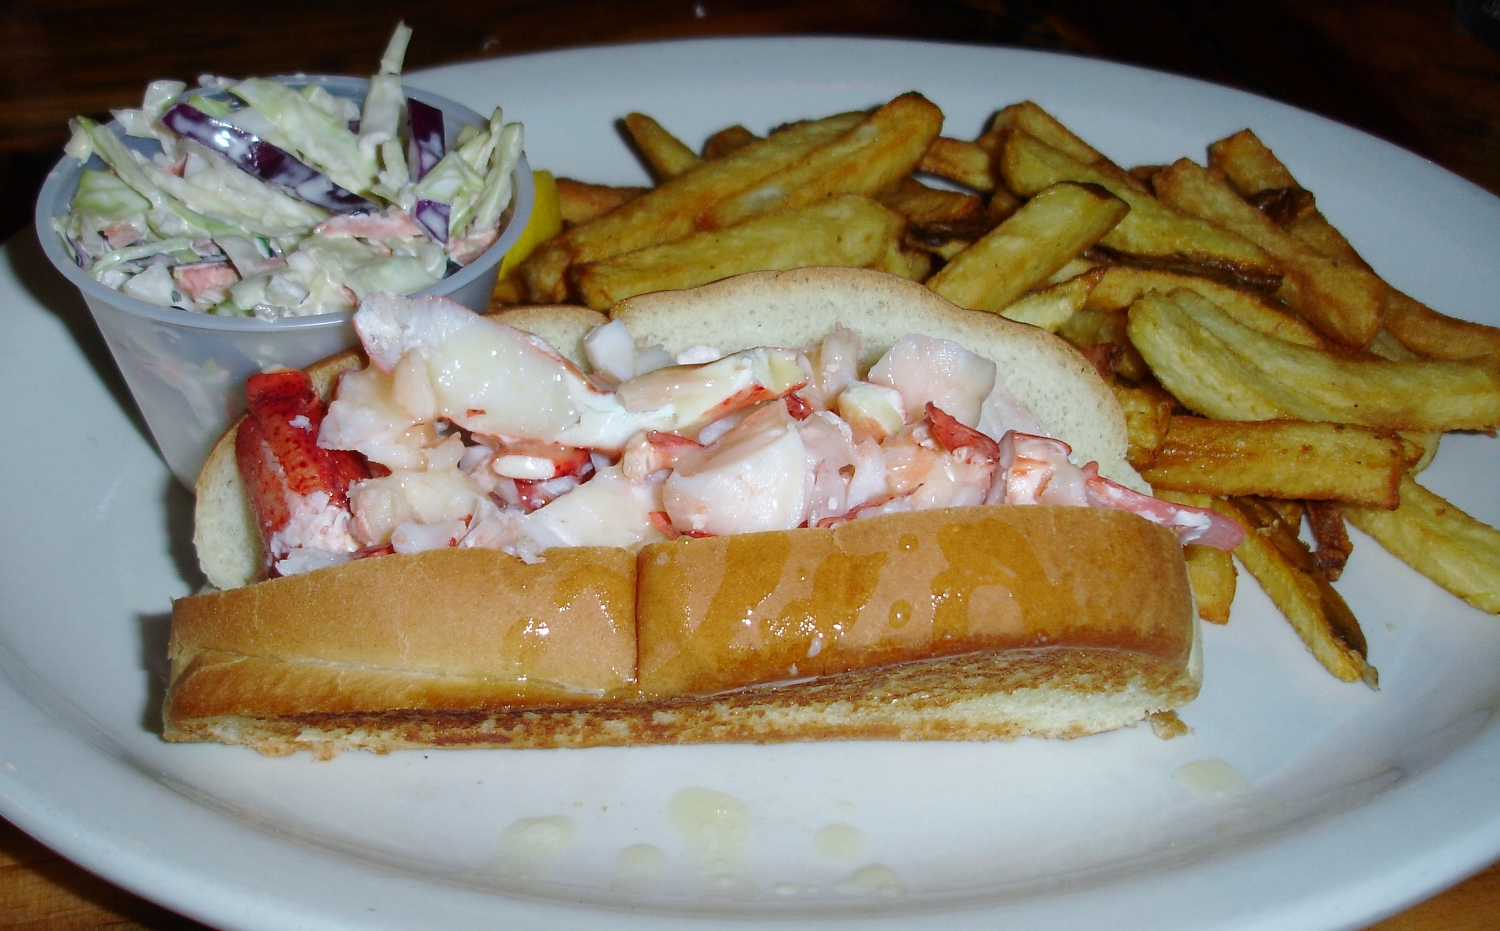 Unfortunately, all the flavor in that lobster bisque must have come at the expense of the cooked lobster because the cold meat on this daily special lobster roll was almost devoid of flavor. Too bad, because they grilled the top-loading bun beautifully, and offered the roll with melted butter. Also, their homemade slaw is excellent, as are their homemade fries.